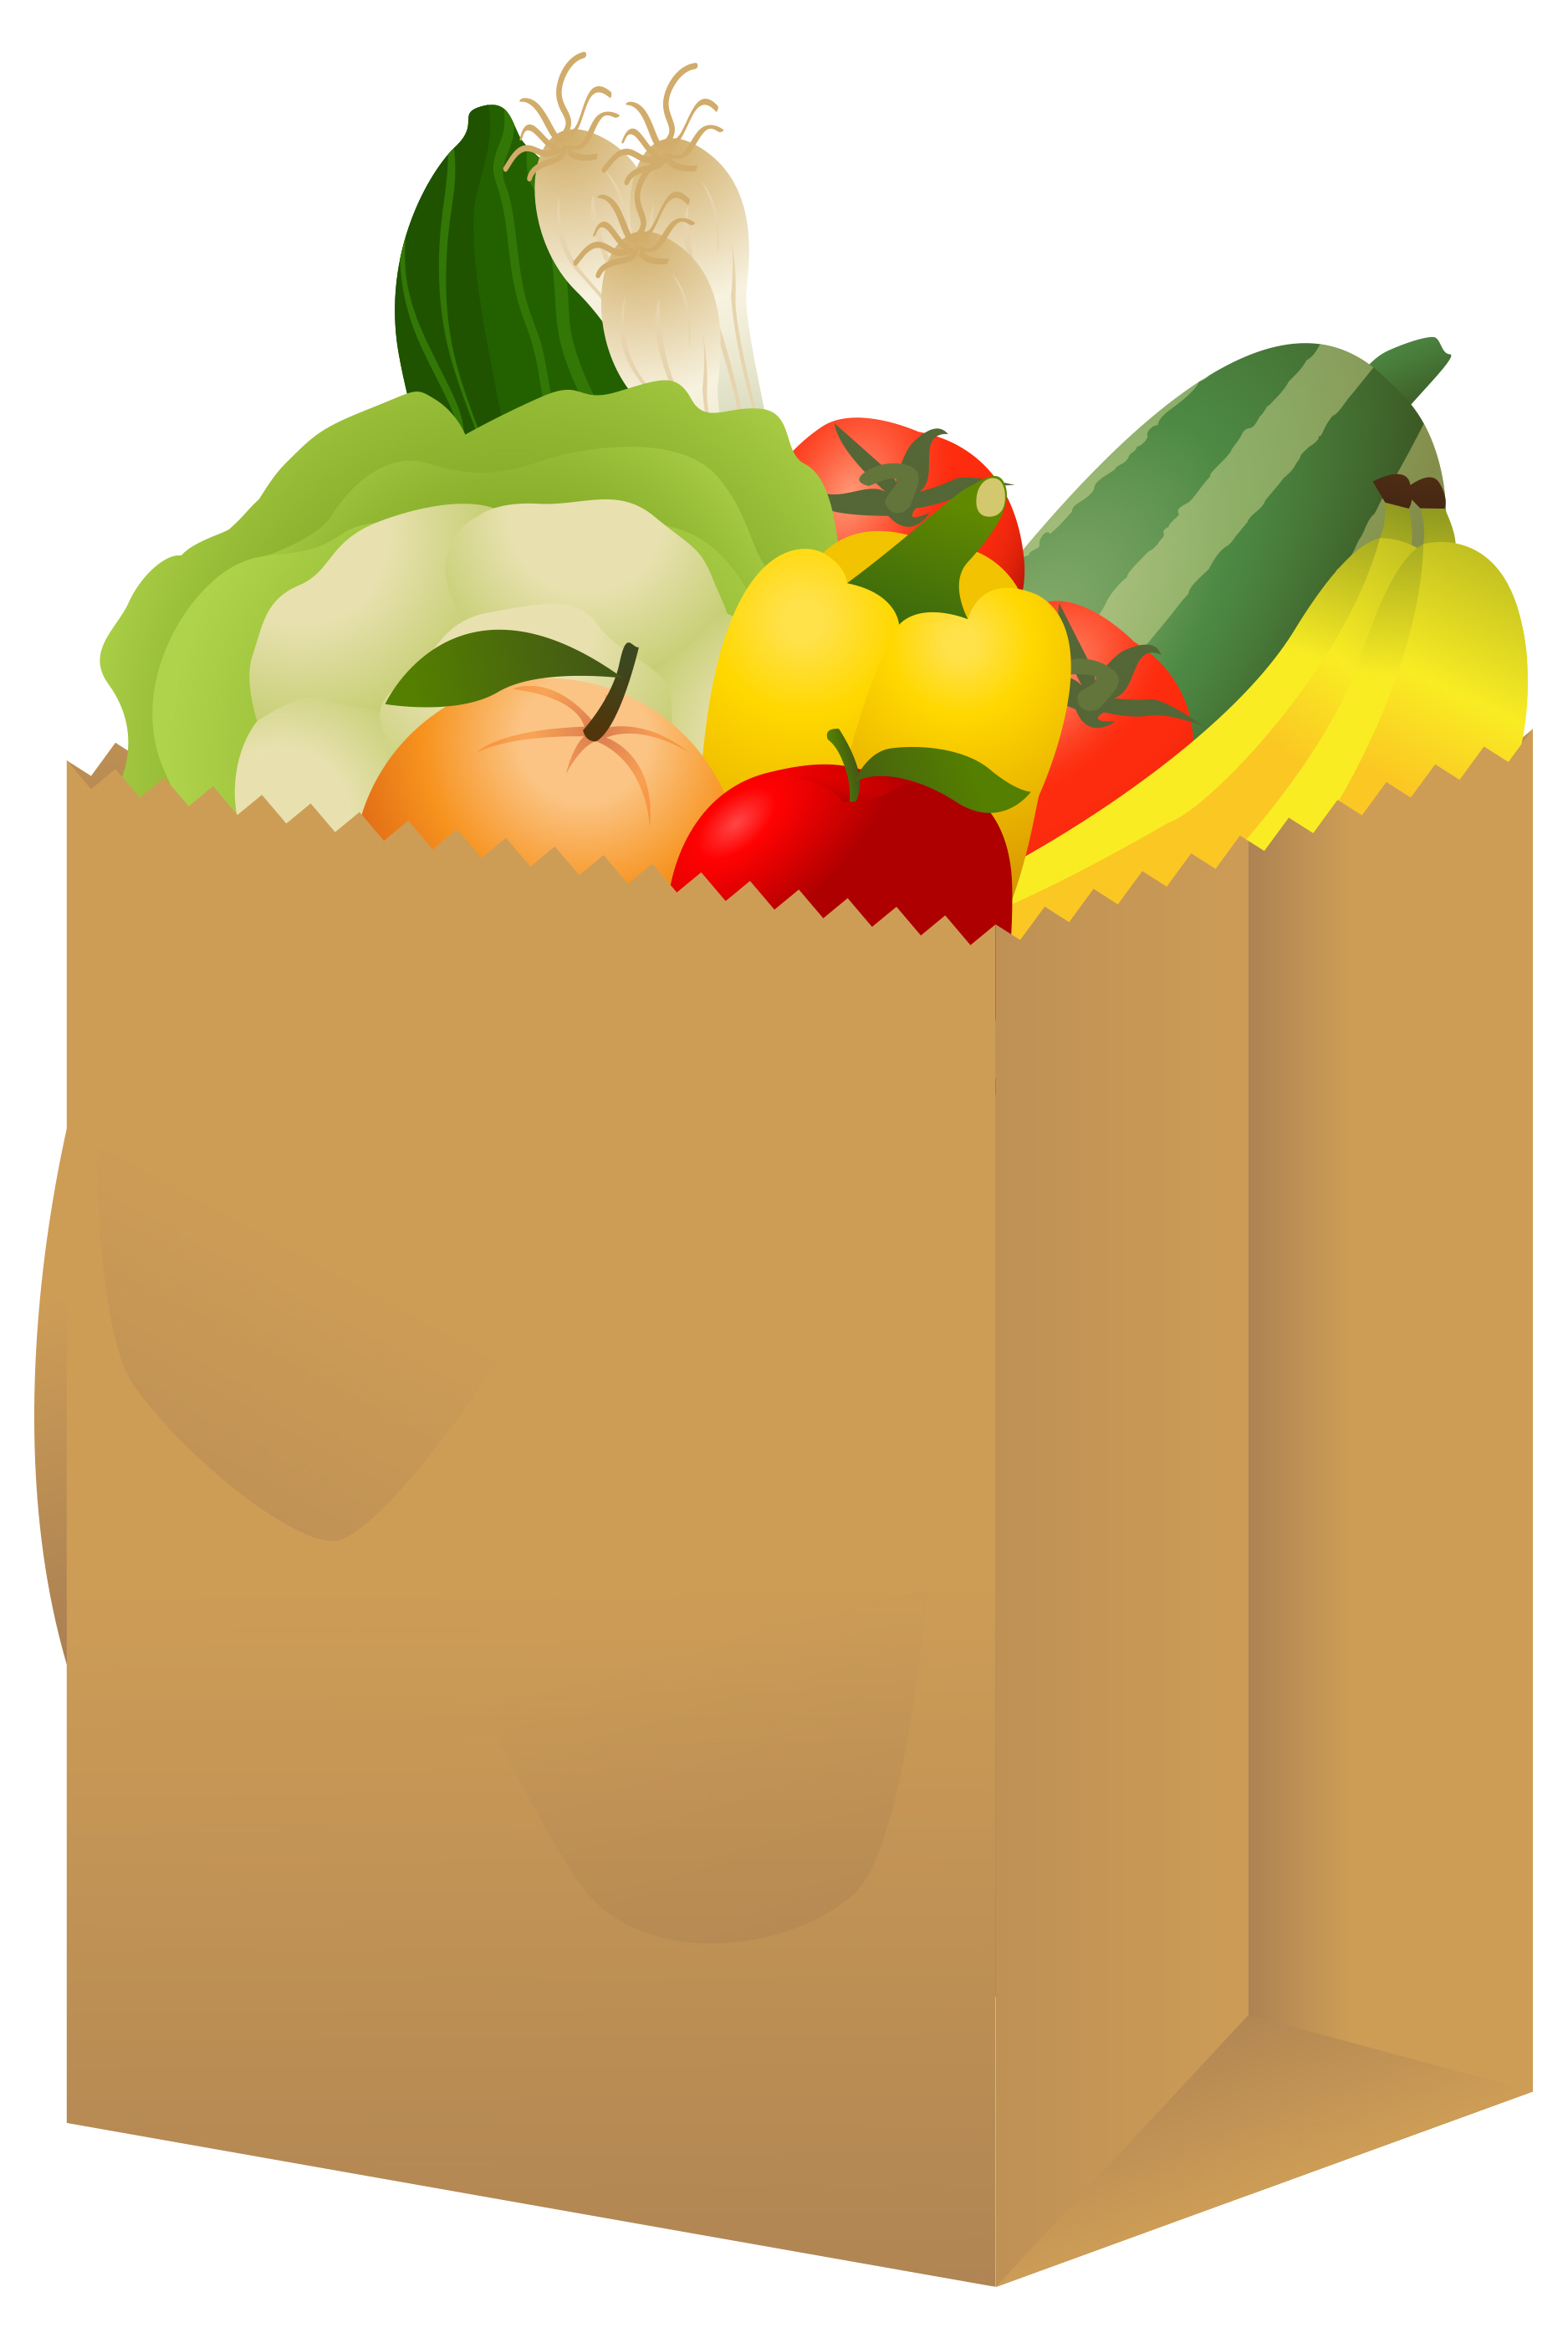 1875x2795 Bag Clipart Grocery Store